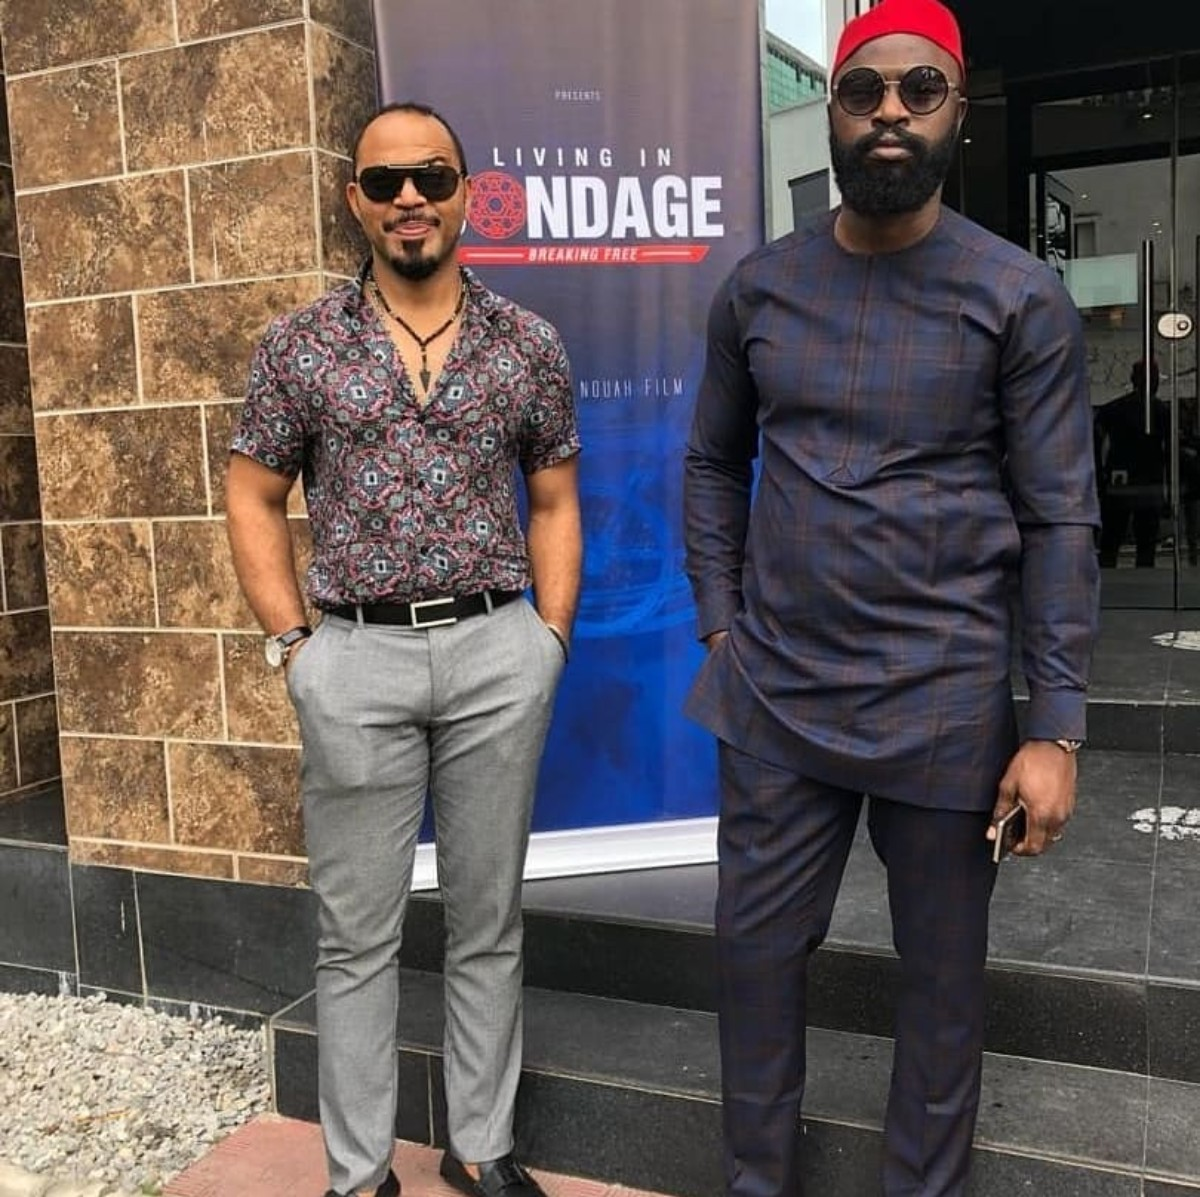 Ramsey Nouah and Charles Okpaleke made magic by acquiring and filming one of the best sequel from a Nollywood original, Living in Bondage: Breaking Free. [Amebo book]